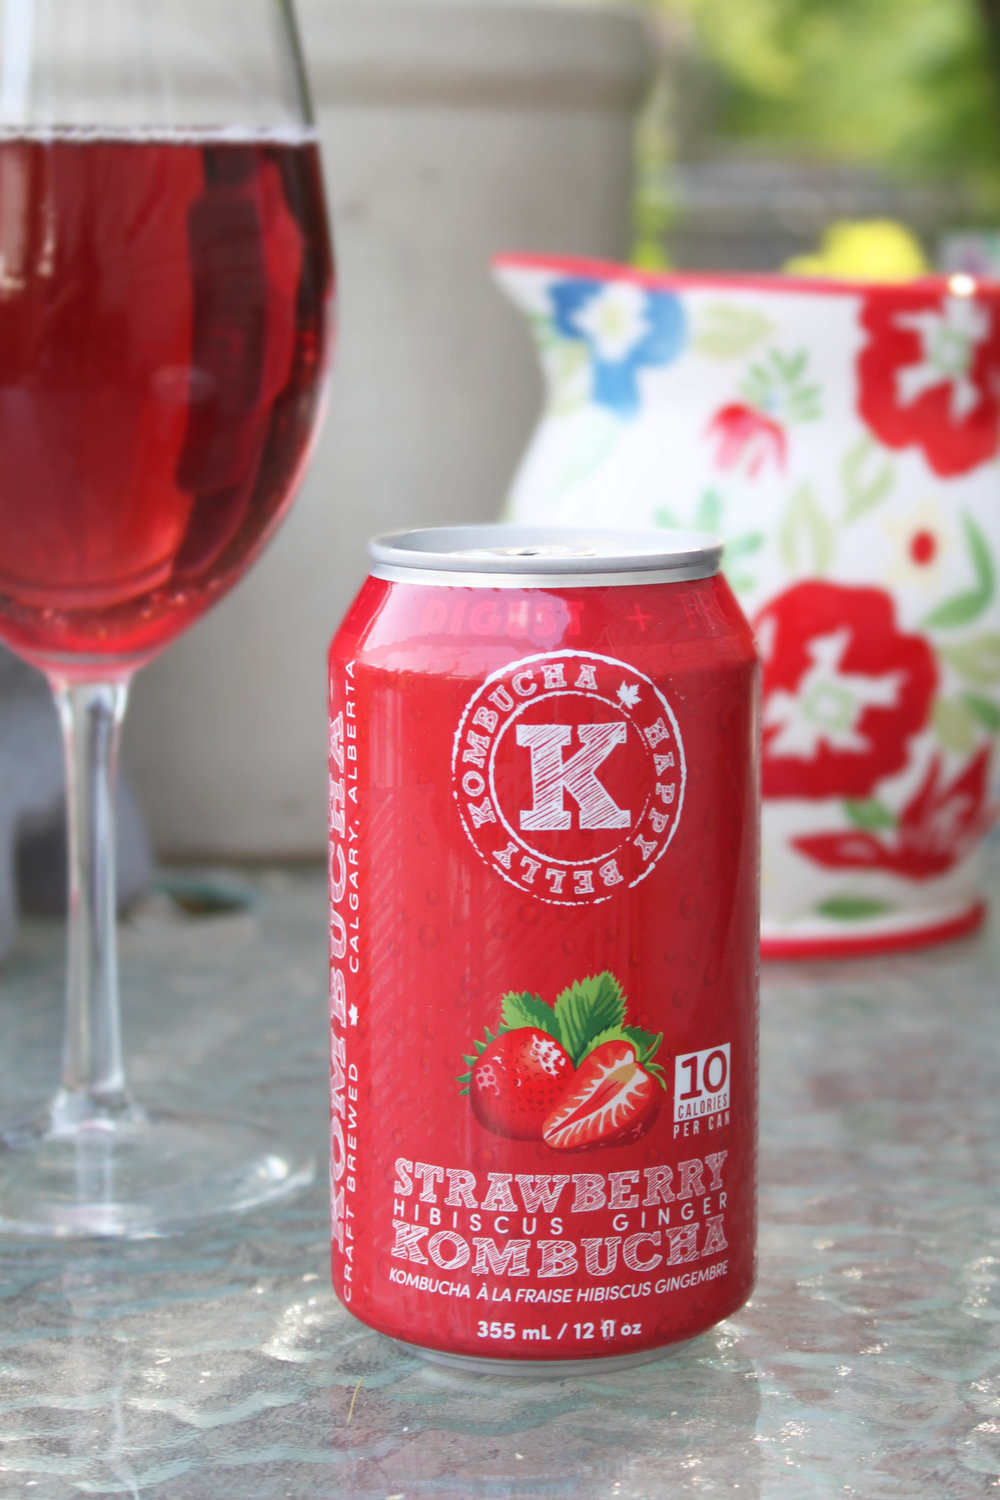 strawberry_lifestyle2.jpg